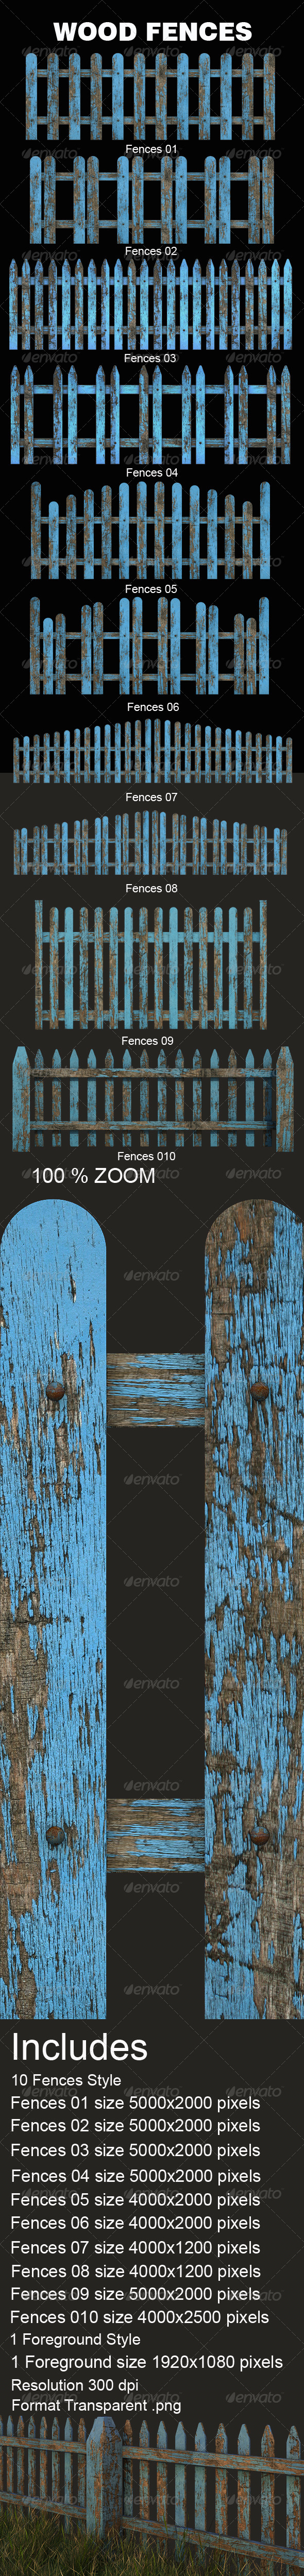 Old Wood Fences  - Objects 3D Renders